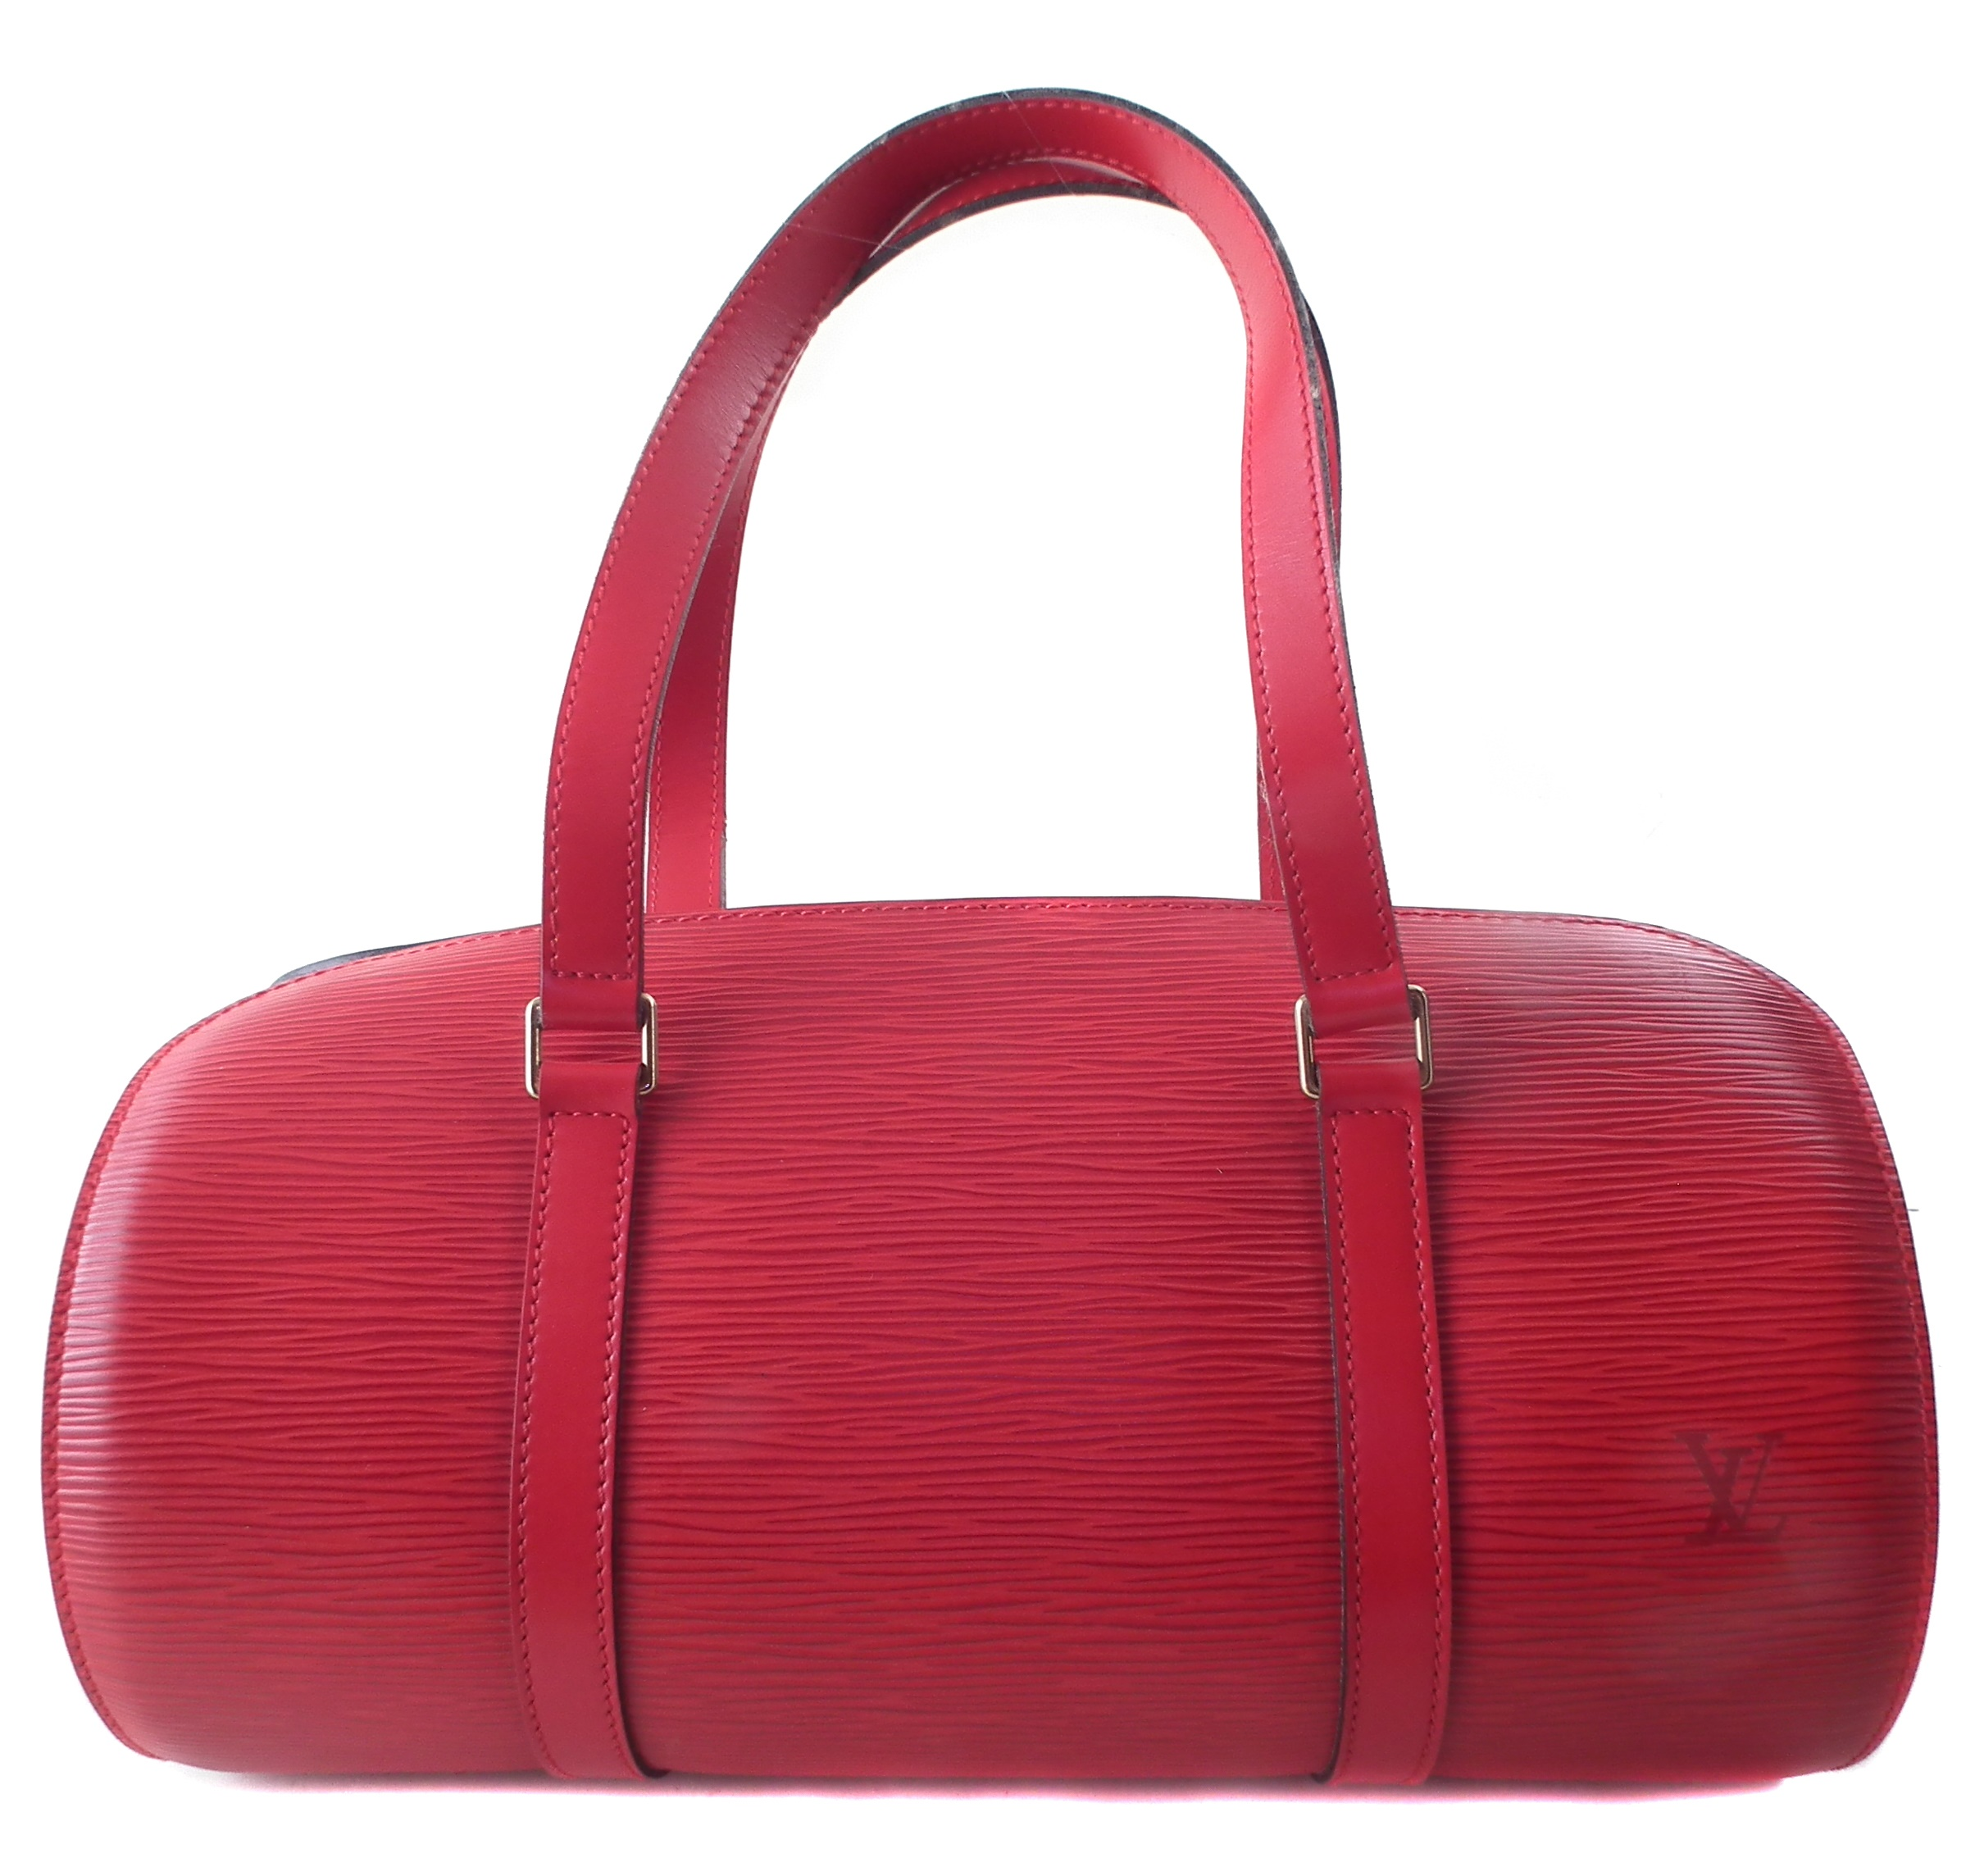 A Louis Vuitton red Epi Soufflot handbag and pouch,